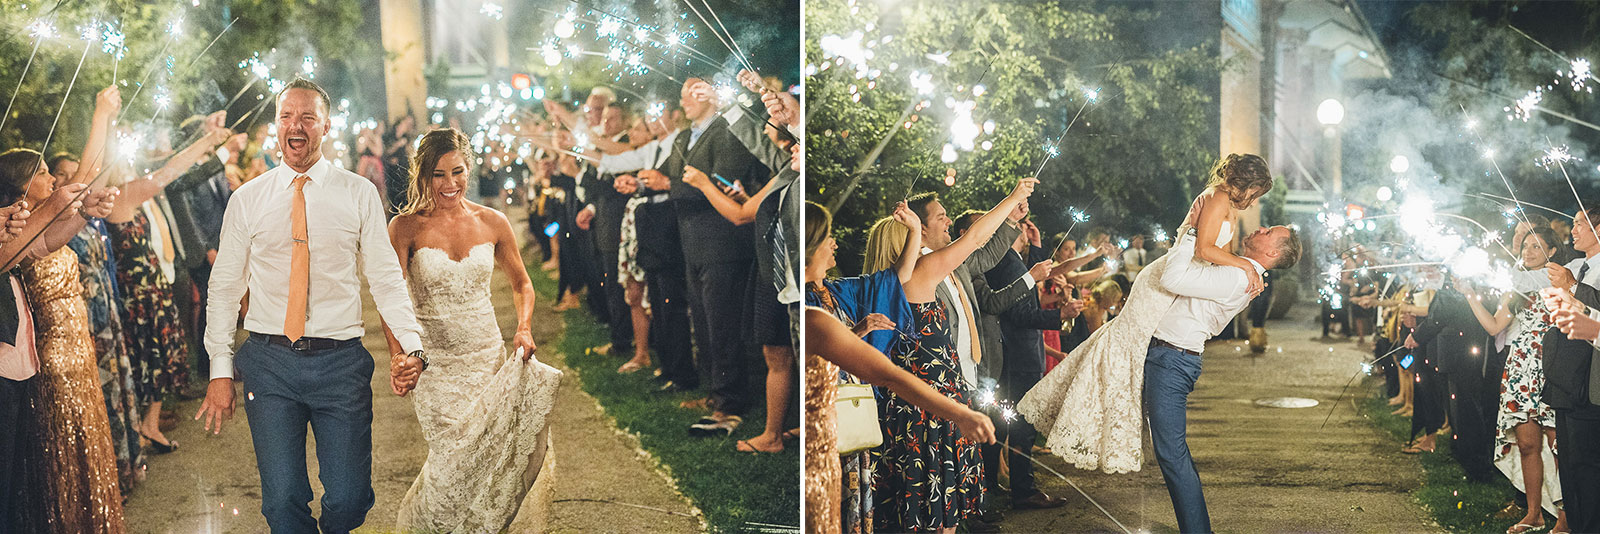 81 sparklers - Natalie + Alan // Chicago Wedding Photographer at Cafe Brauer